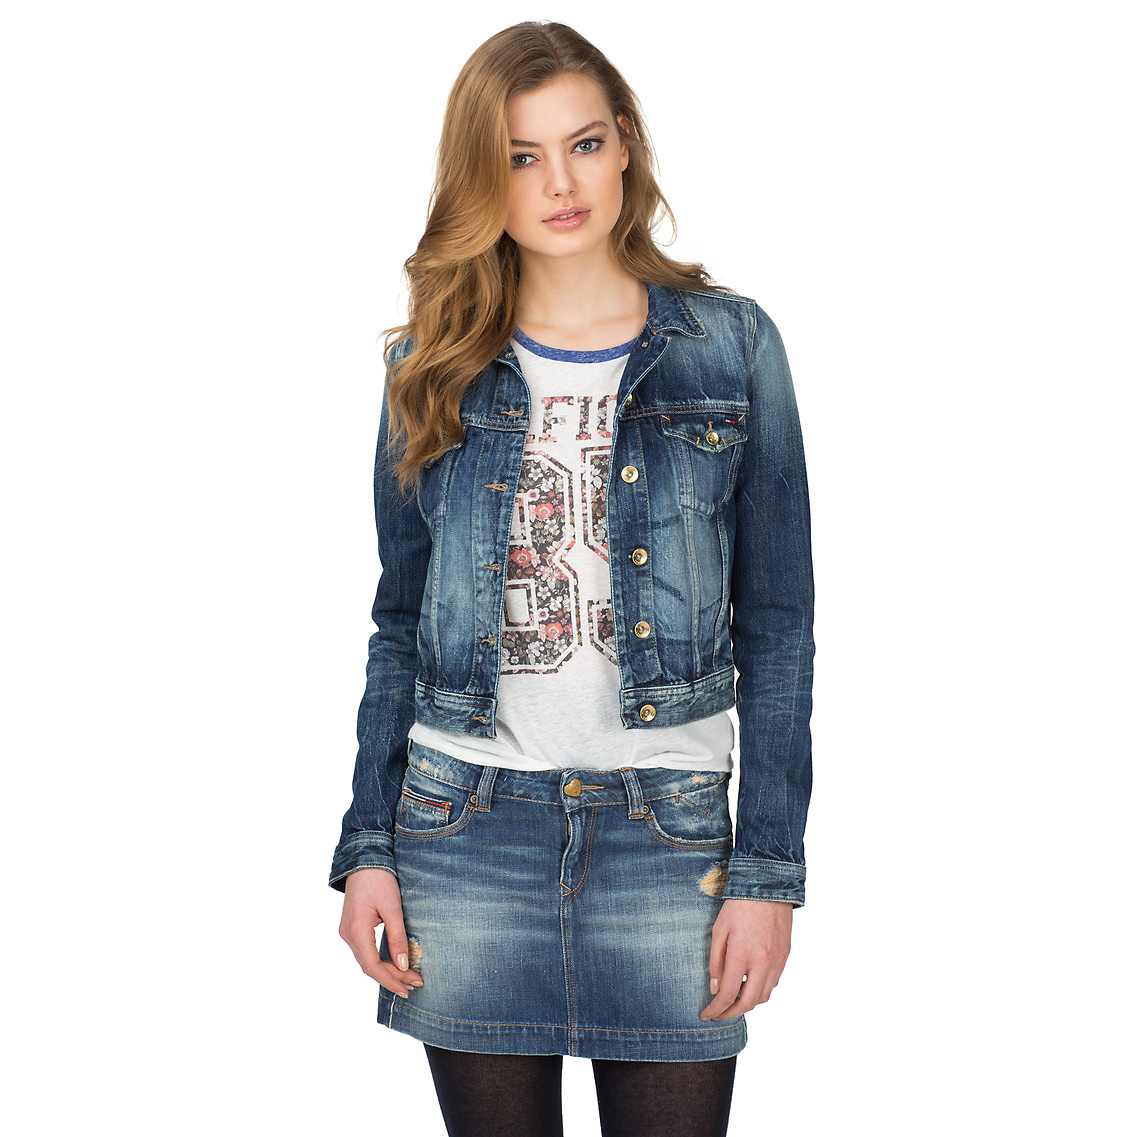 Tommy hilfiger Vivianne Mermst Jean Jacket in Blue (Denim) | Lyst